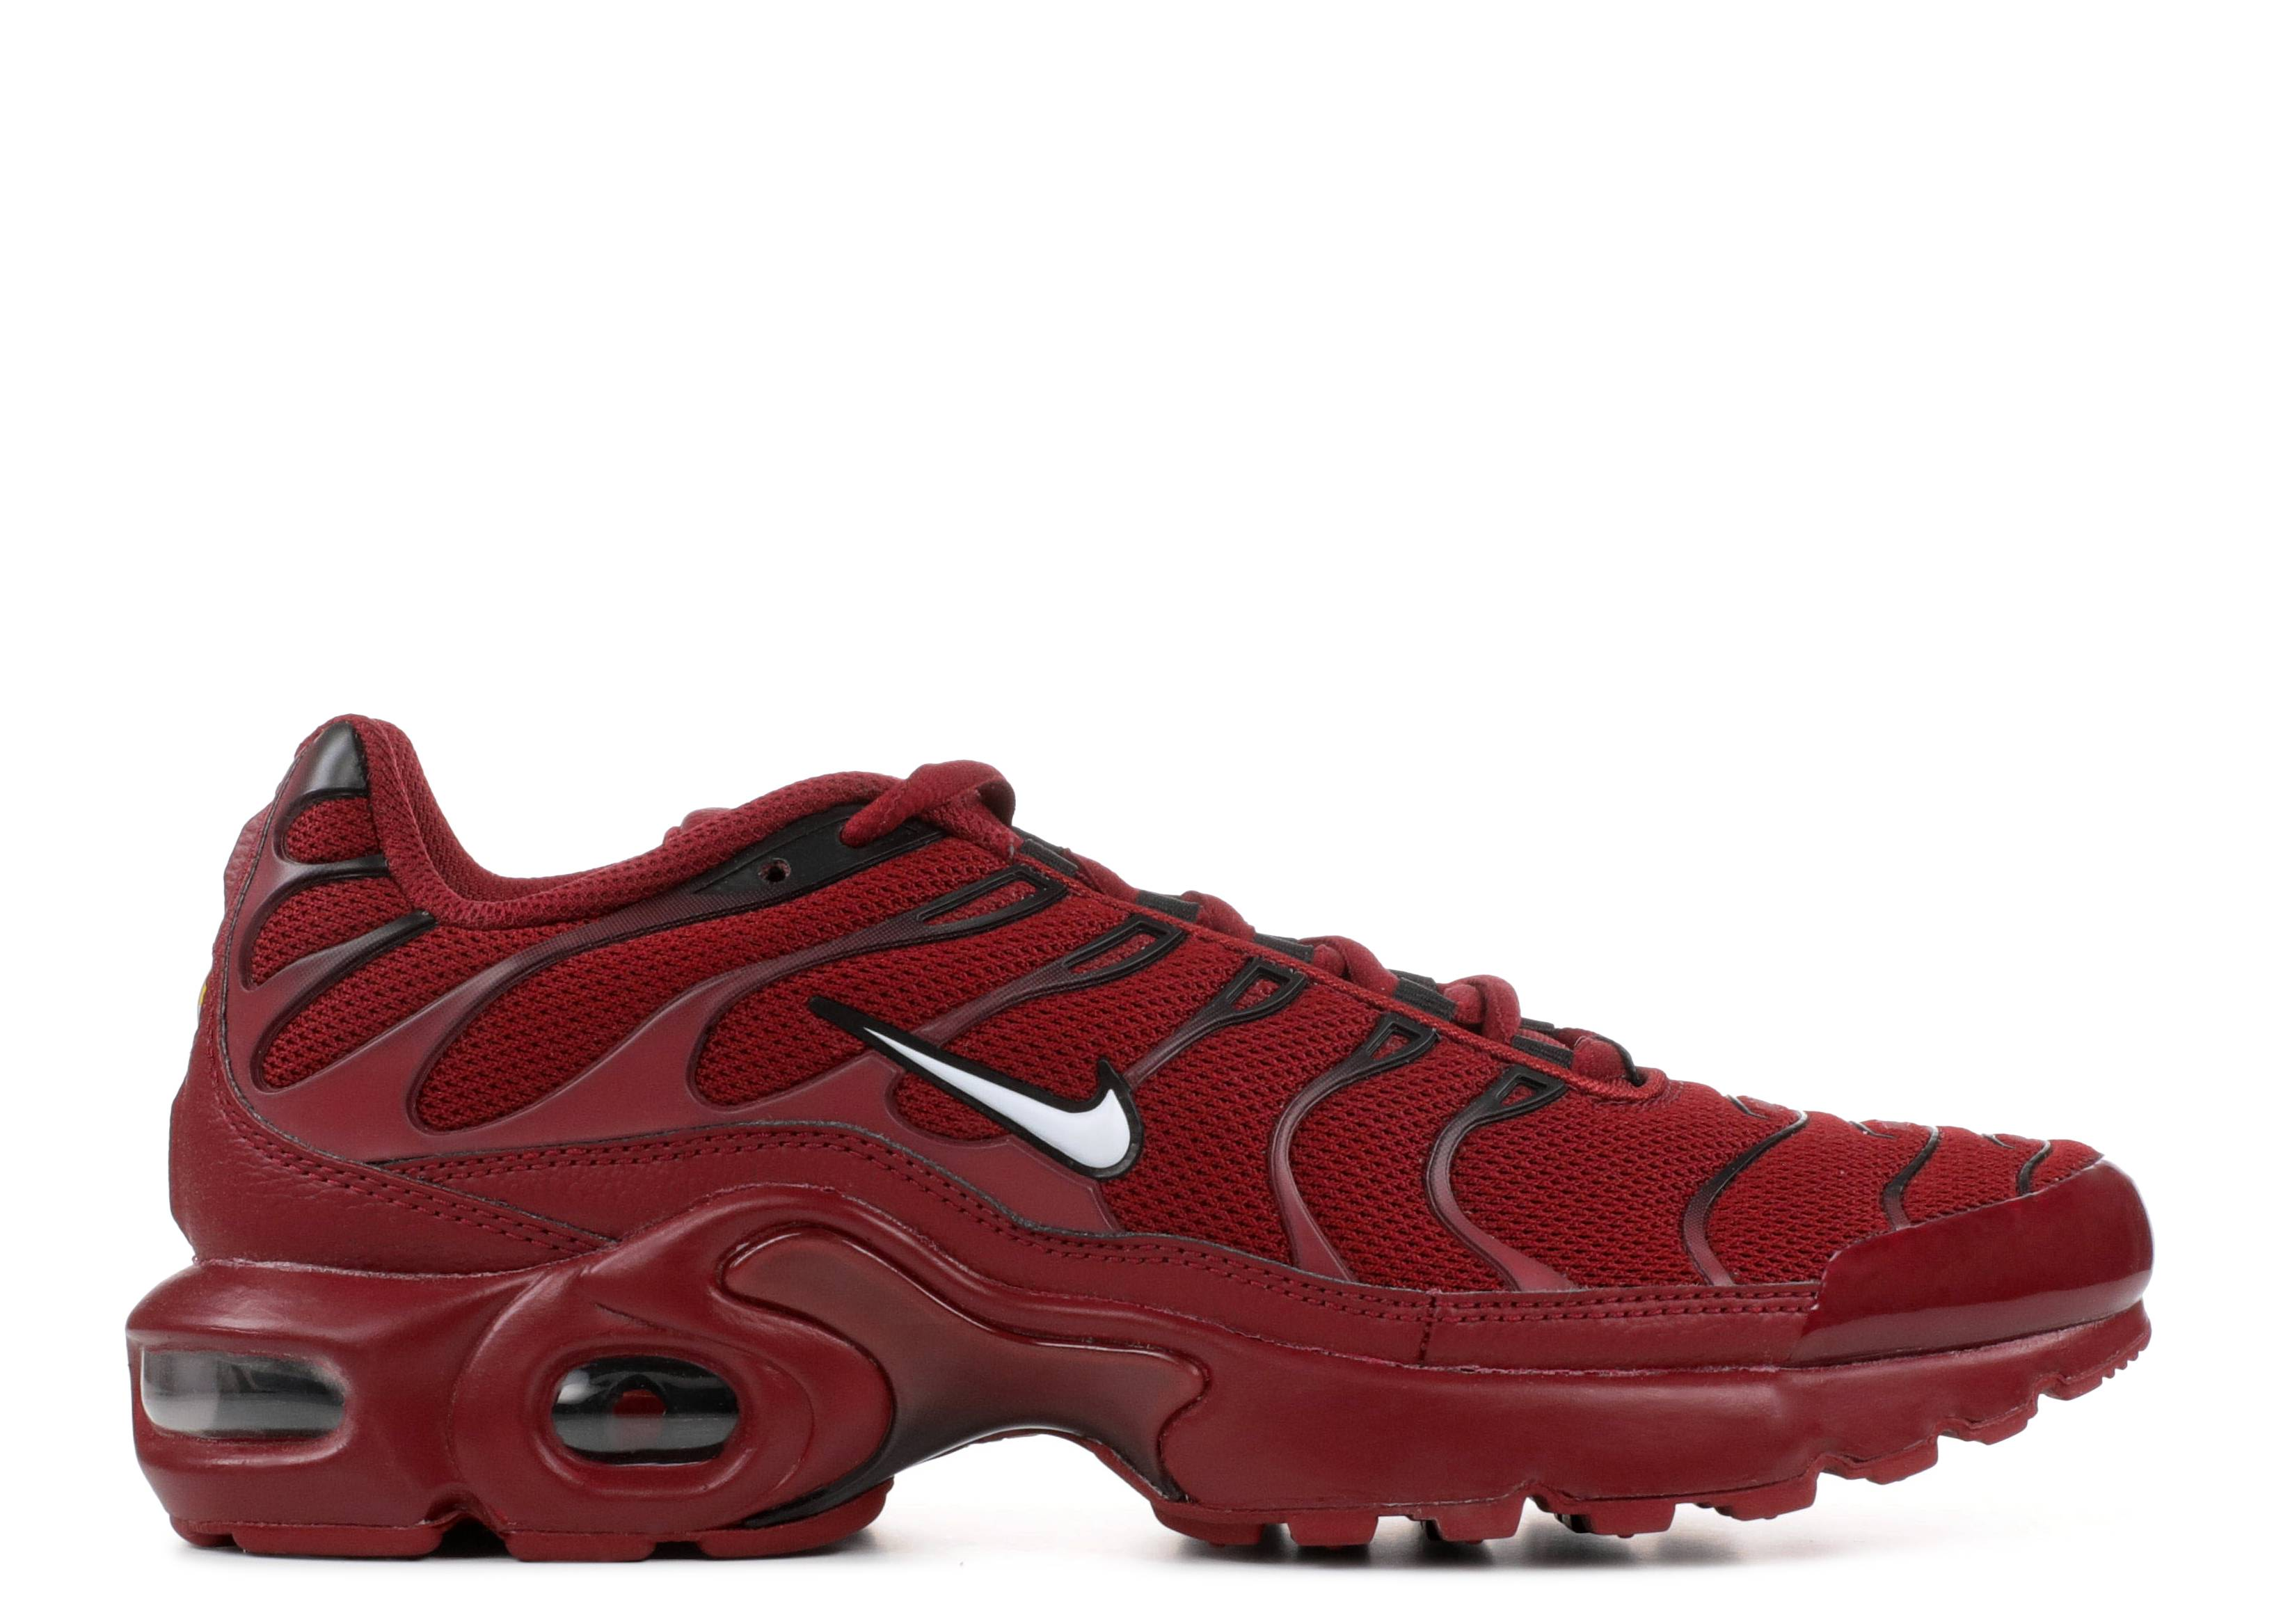 c11801c994aa Air Max Plus (GS) - Nike - 655020 603 - team red white-black ...